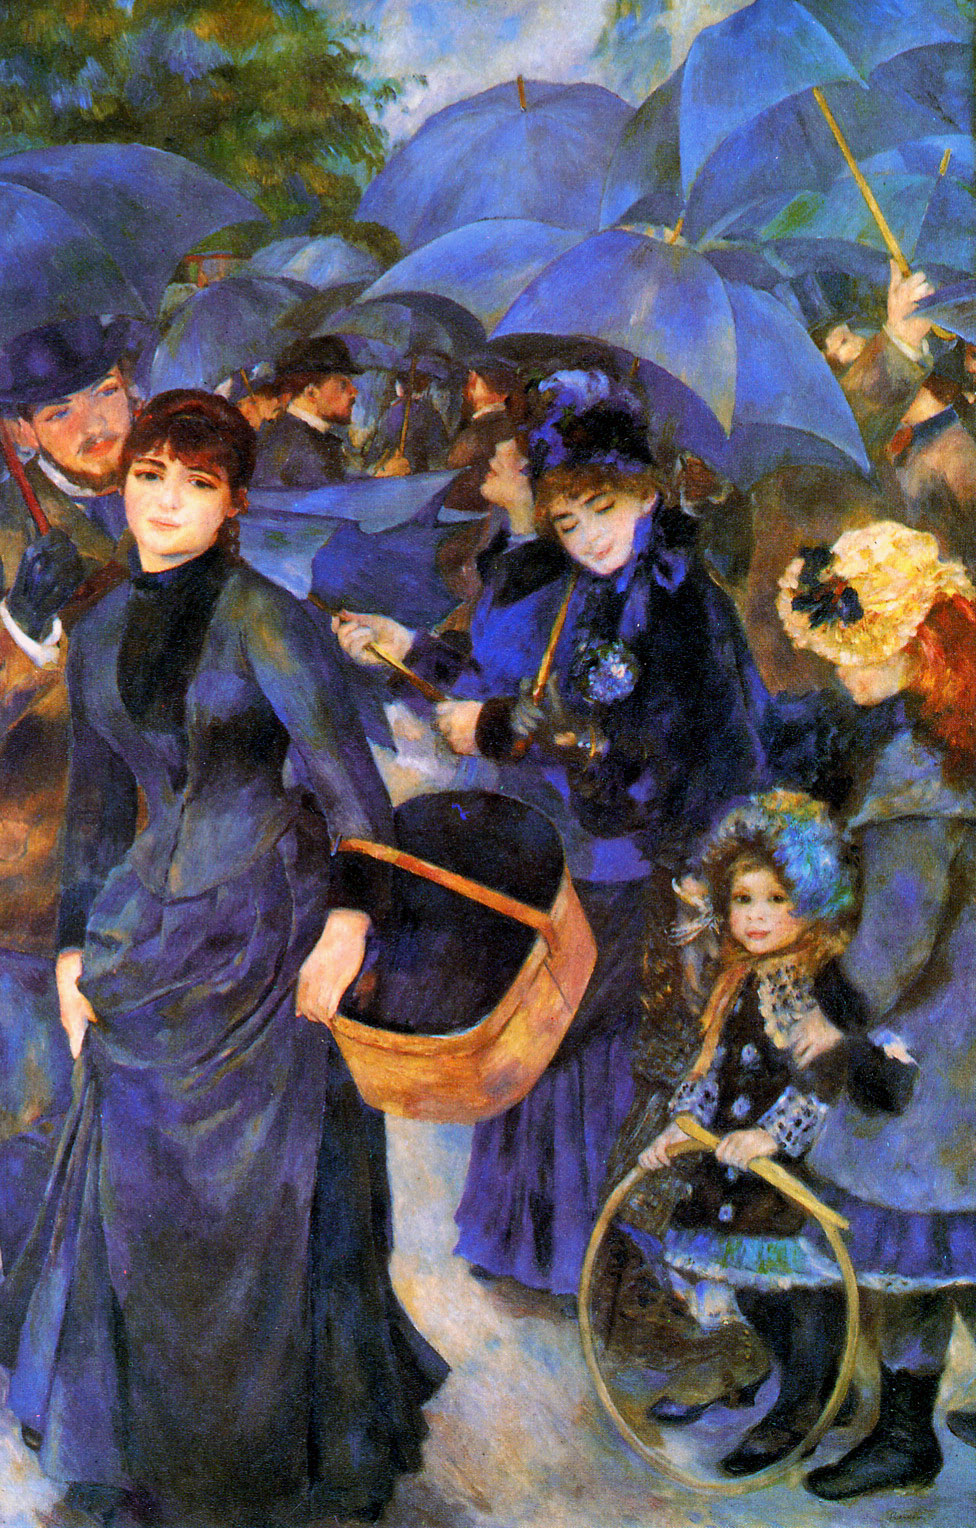 The Umbrellas by Pierre Auguste Renoir, 1886